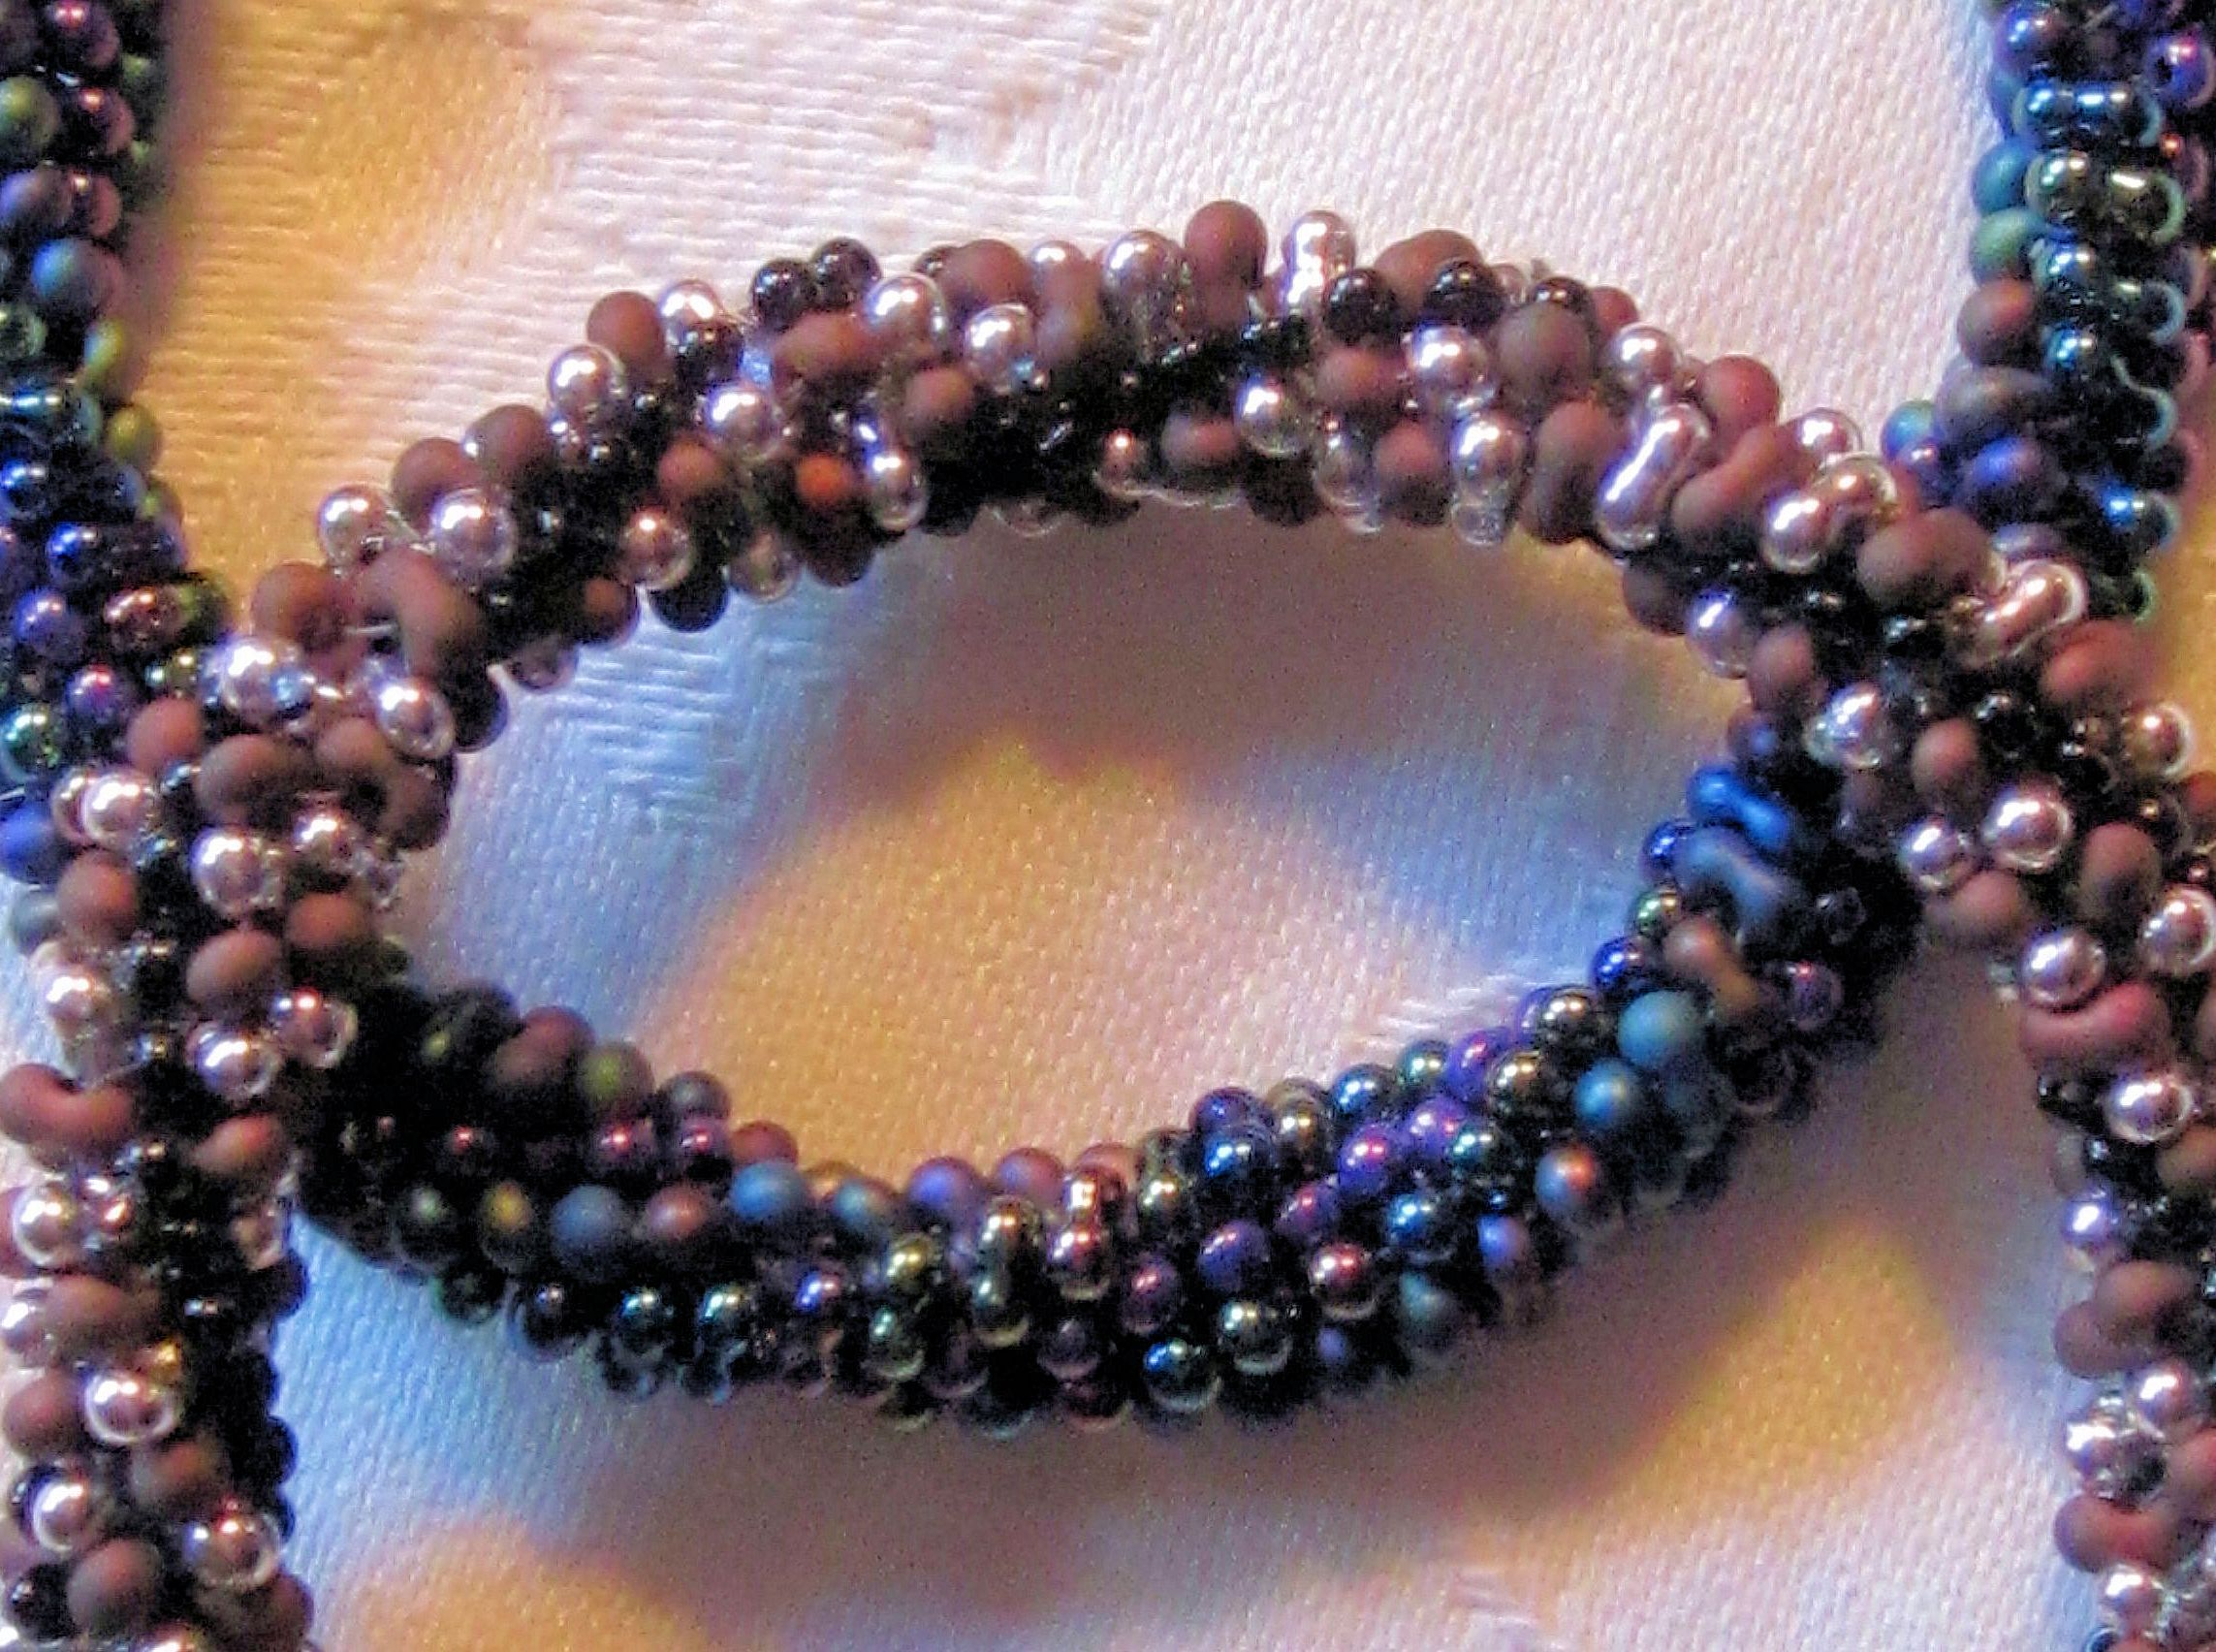 twisted peanuts and seed bead bracelet...free pattern at www.bead-patterns.com